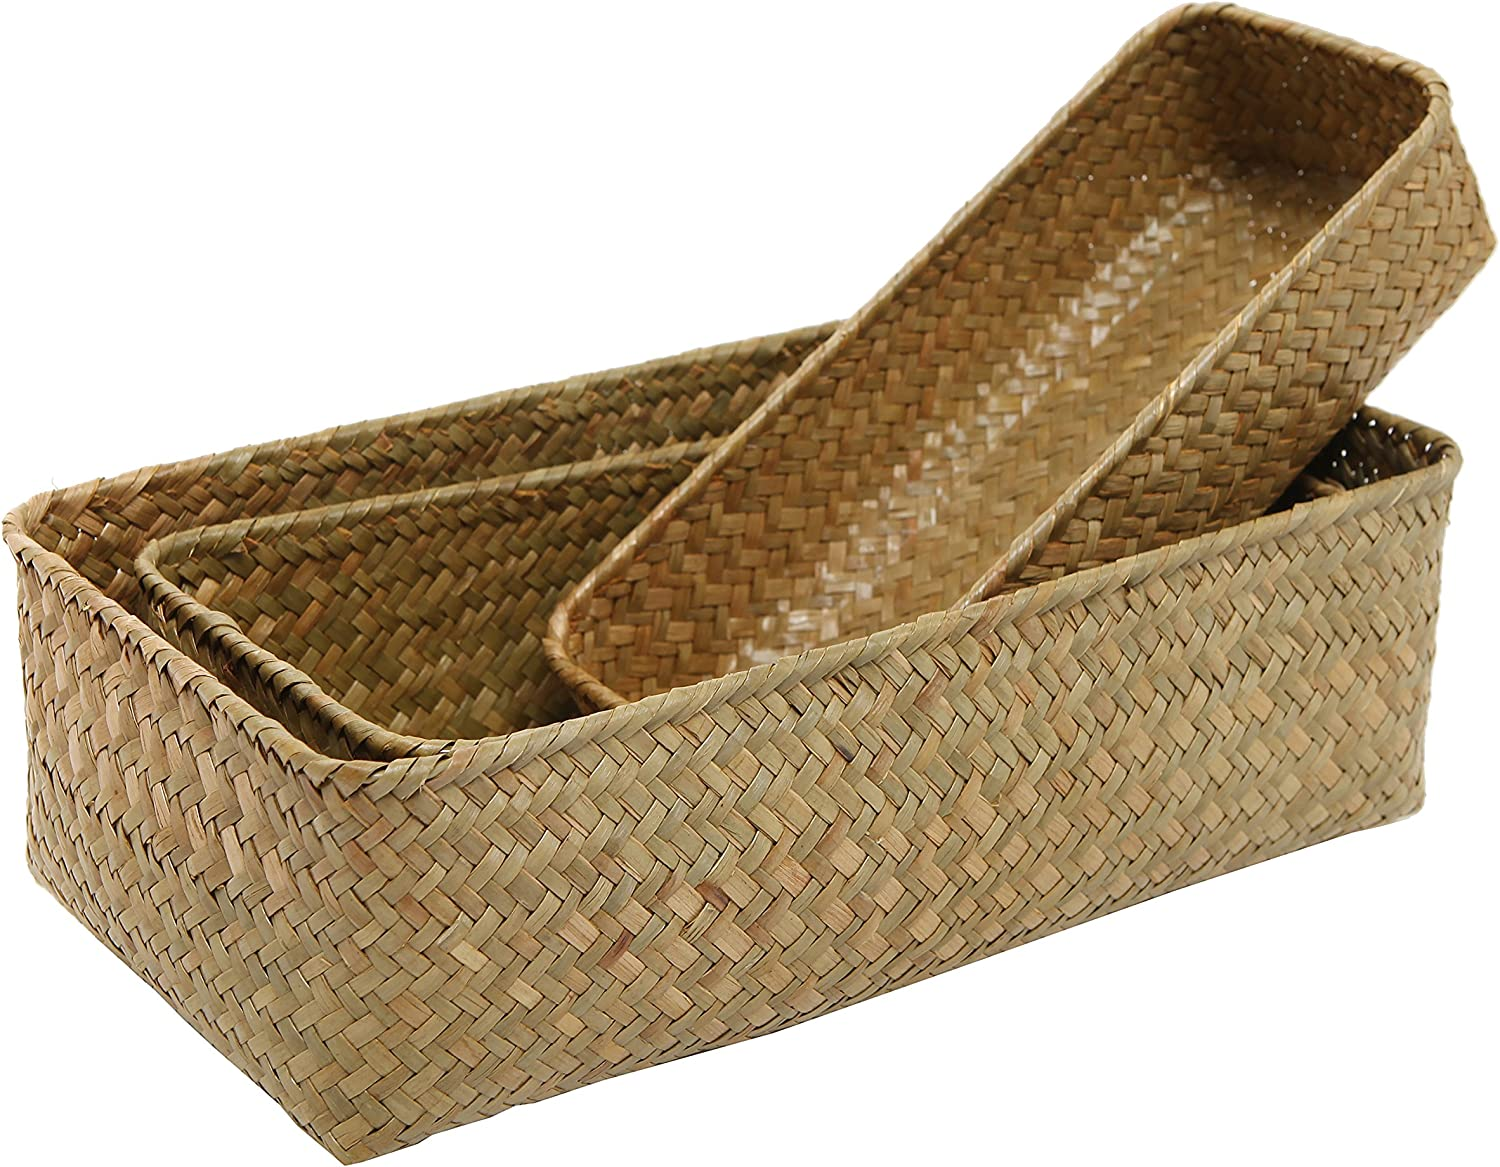 MyGift Set of 3 Rectangular Handwoven Natural Seagrass Wicker Nesting Storage Baskets and Home Organizer Bins